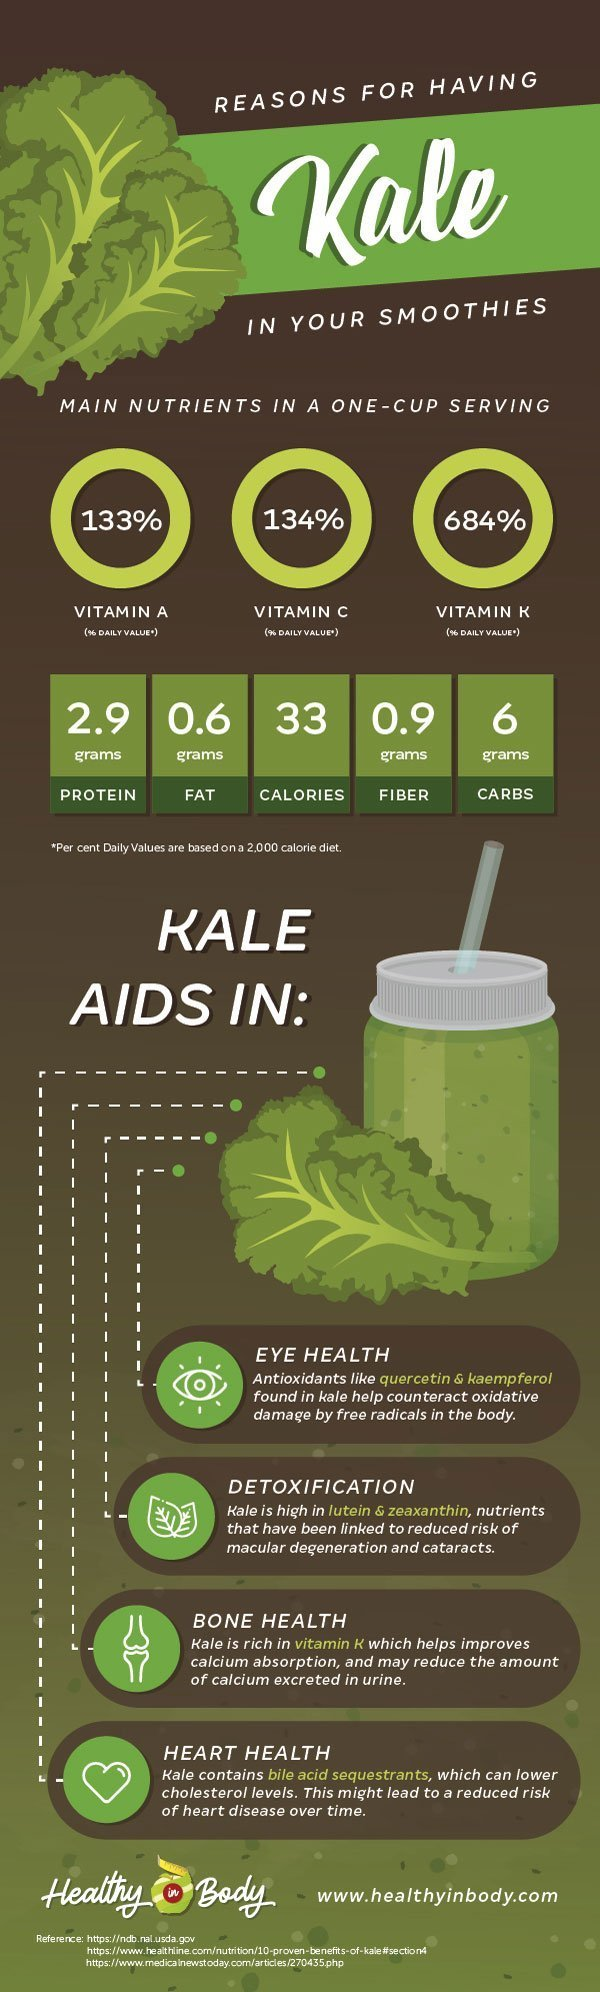 An info-graphic presenting the nutrient content and health benefits of kale and an illustration of a stalk of kale next to a glass of kale smoothie